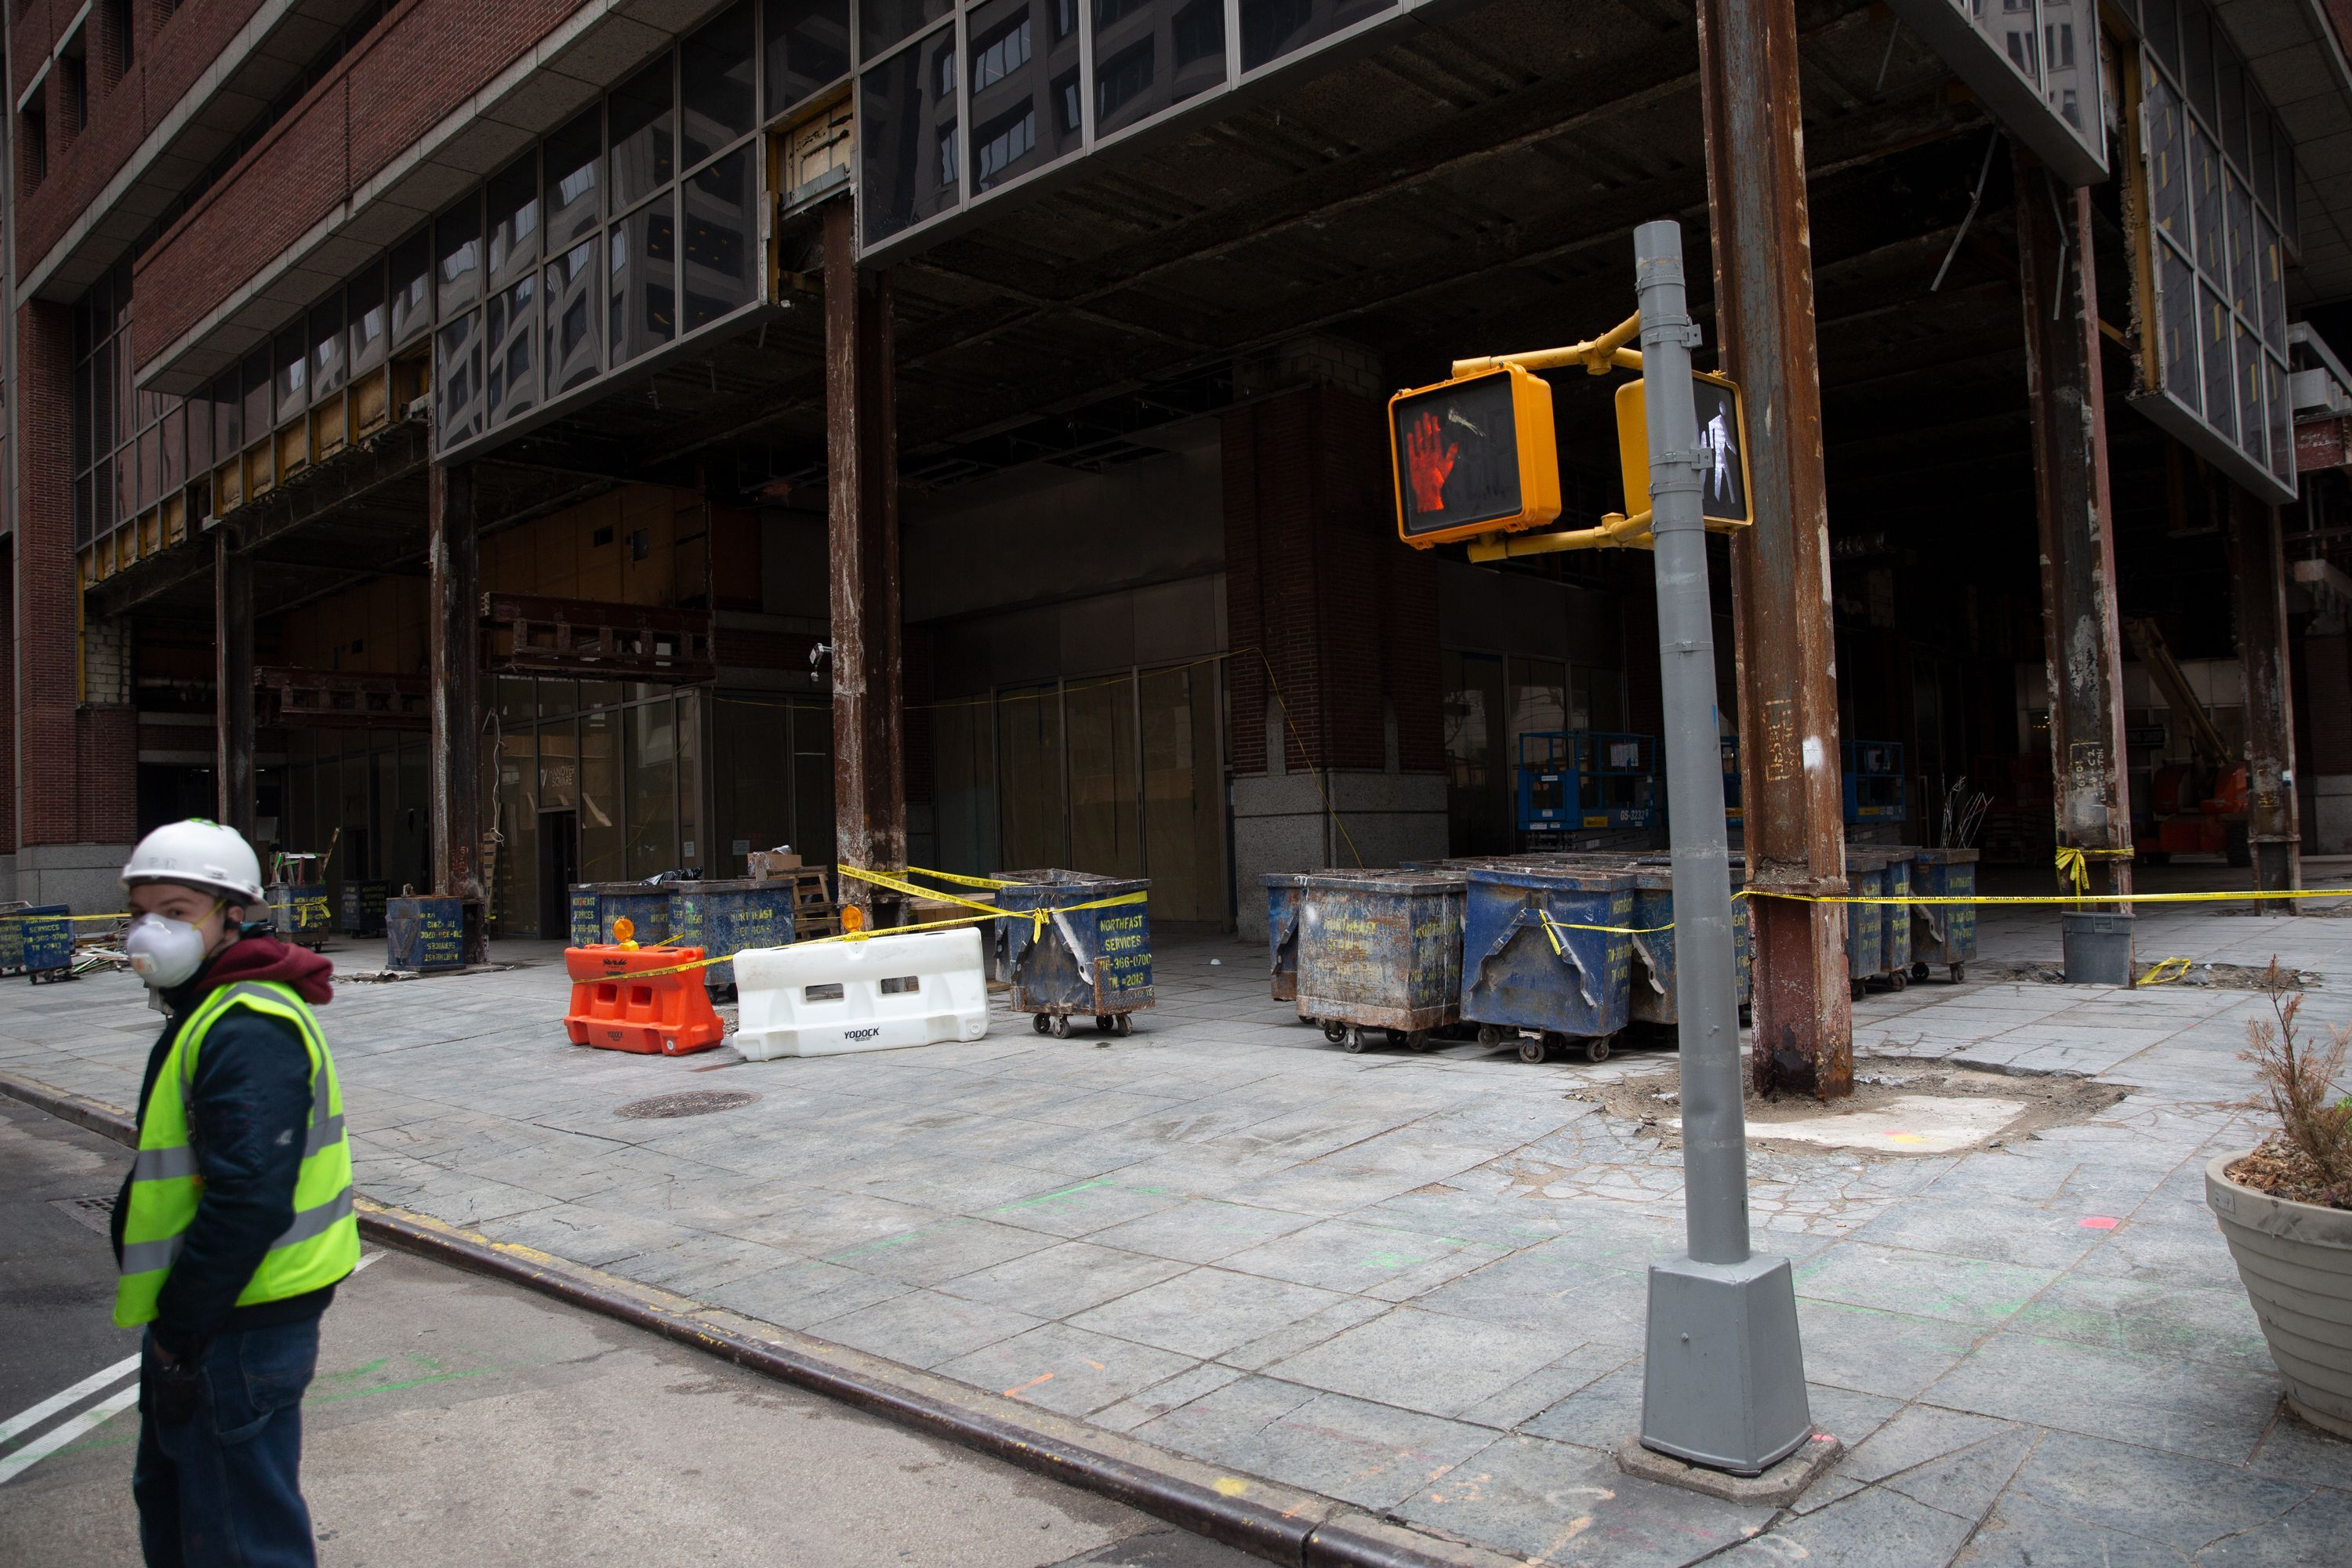 A development at 7 Hanover Sq. in Manhattan was considered an essential project during the coronavirus outbreak.